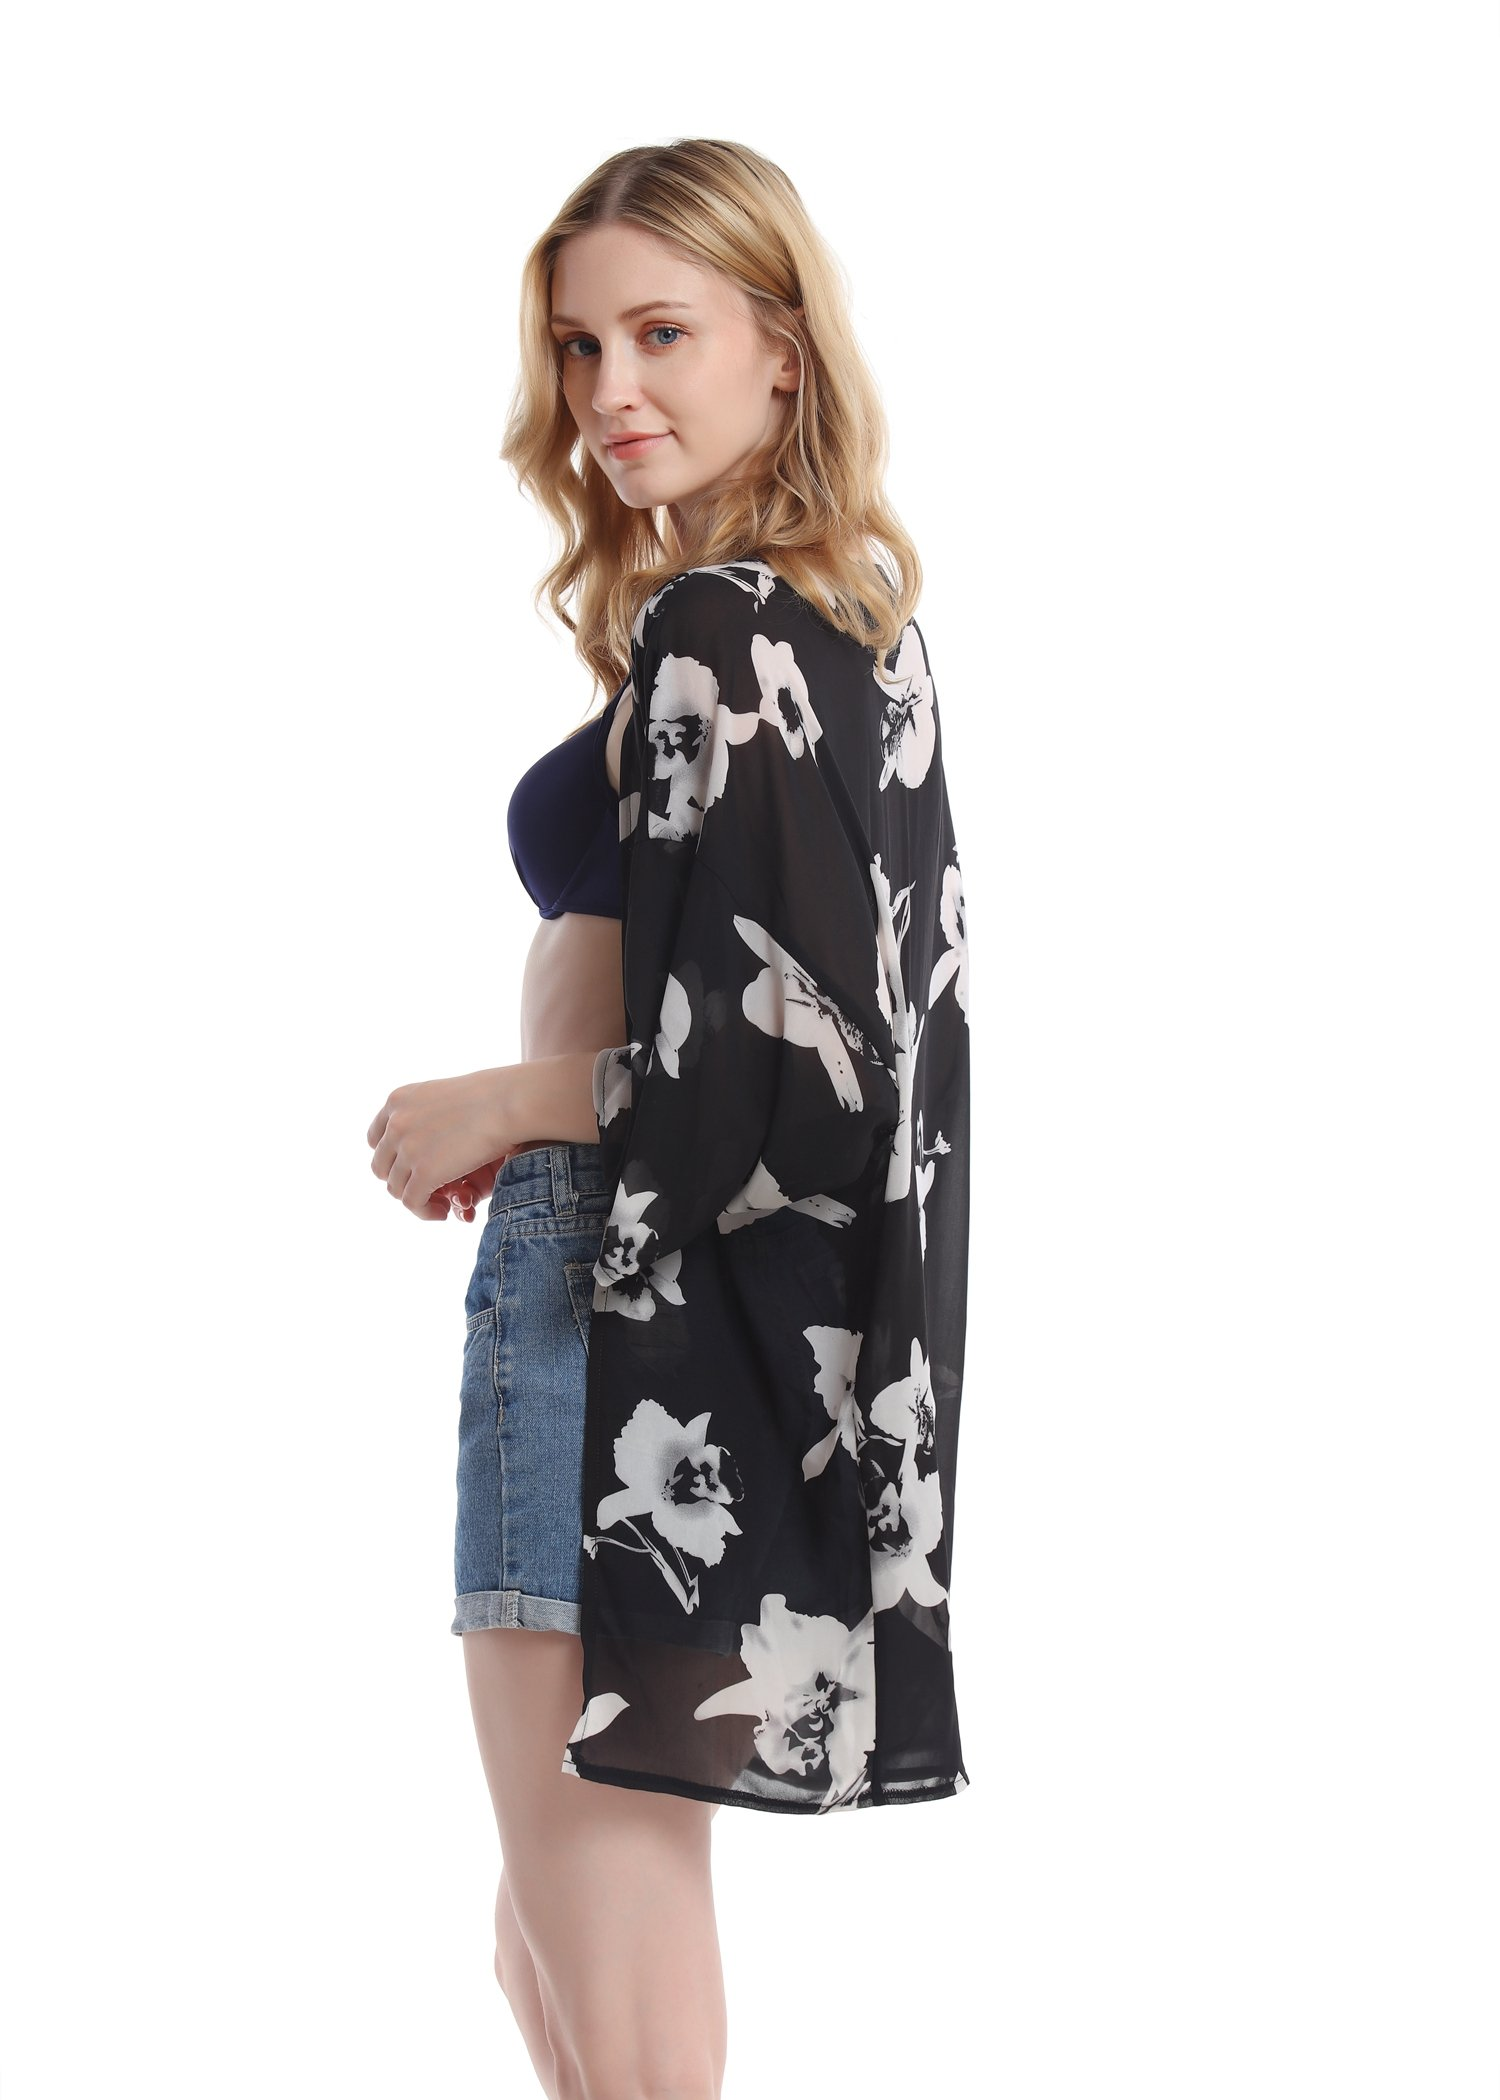 Women's Floral Chiffon Kimono Top - Ladies Sheer Flower 3/4 Sleeves Beach Cover Up for Bikini,Beachwear and Cardigan(Black&White,XL) by soul young (Image #4)